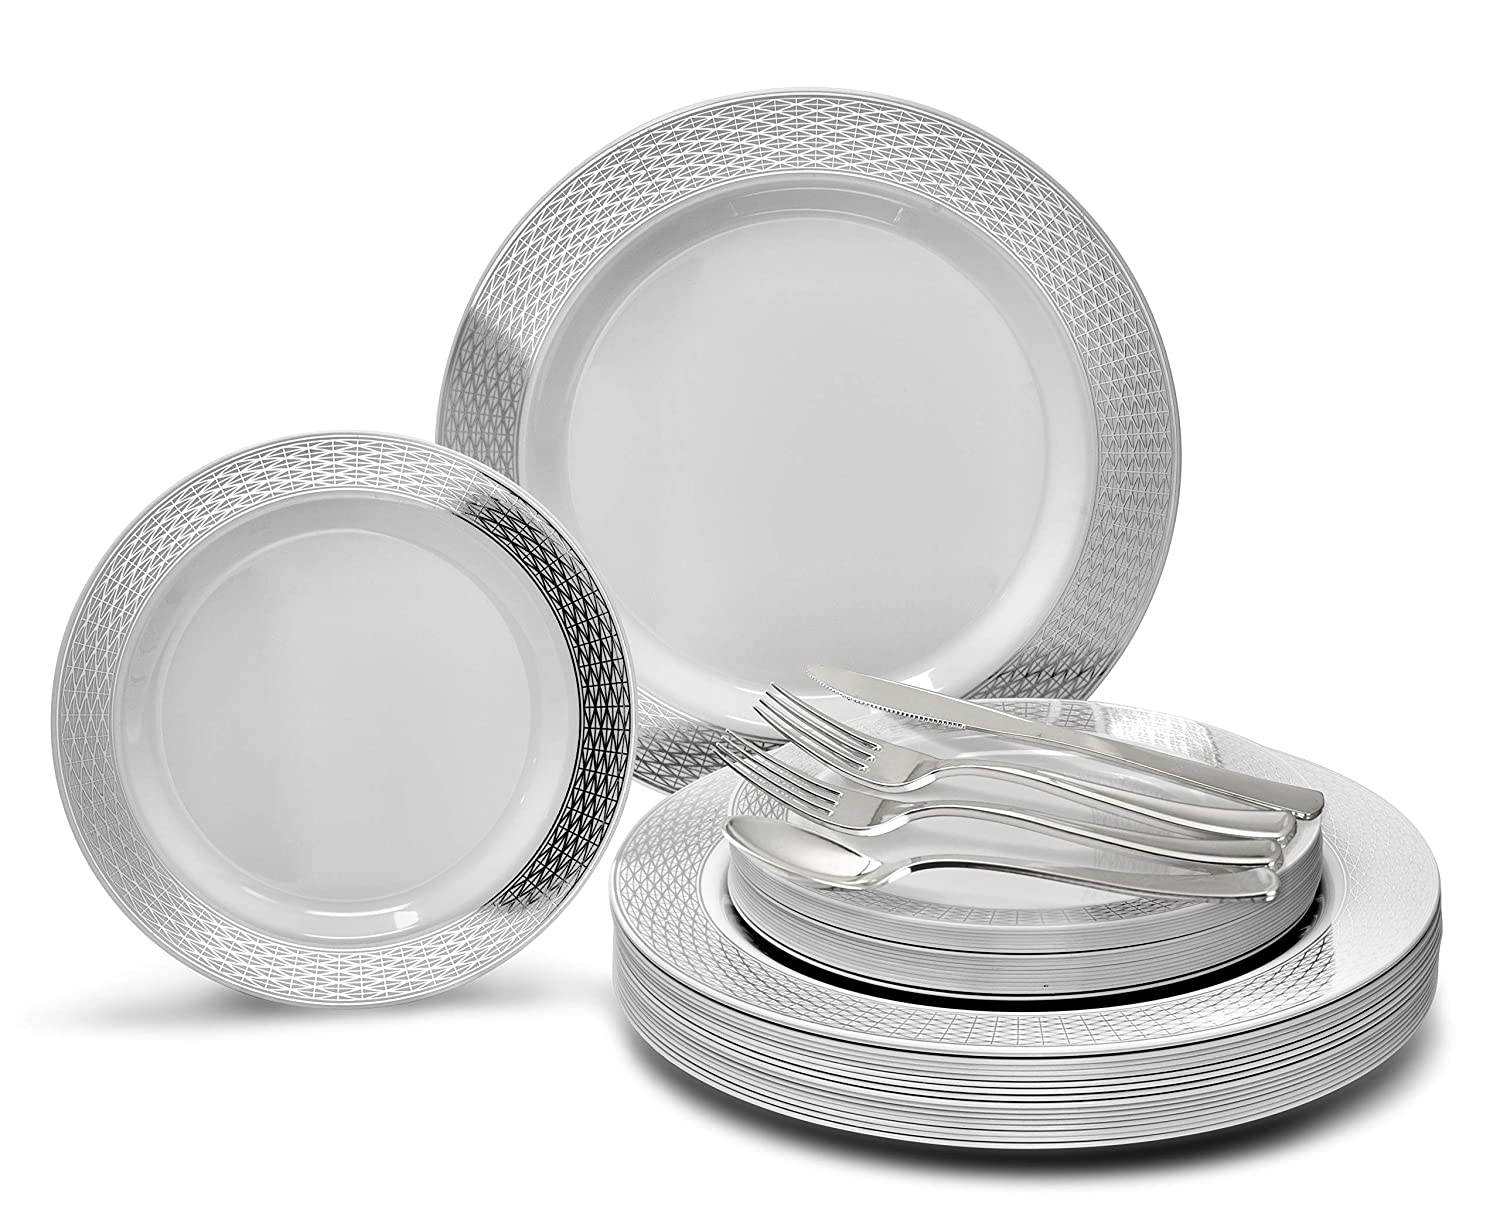 Diamond White   Silver Plates, Silver Silverware 720 pcs (120 guests) OCCASIONS 720 PCS   120 GUEST Wedding Disposable Plastic Plate and Silverware Combo Set (Diamond White Silver Plates, Silver Silverware)